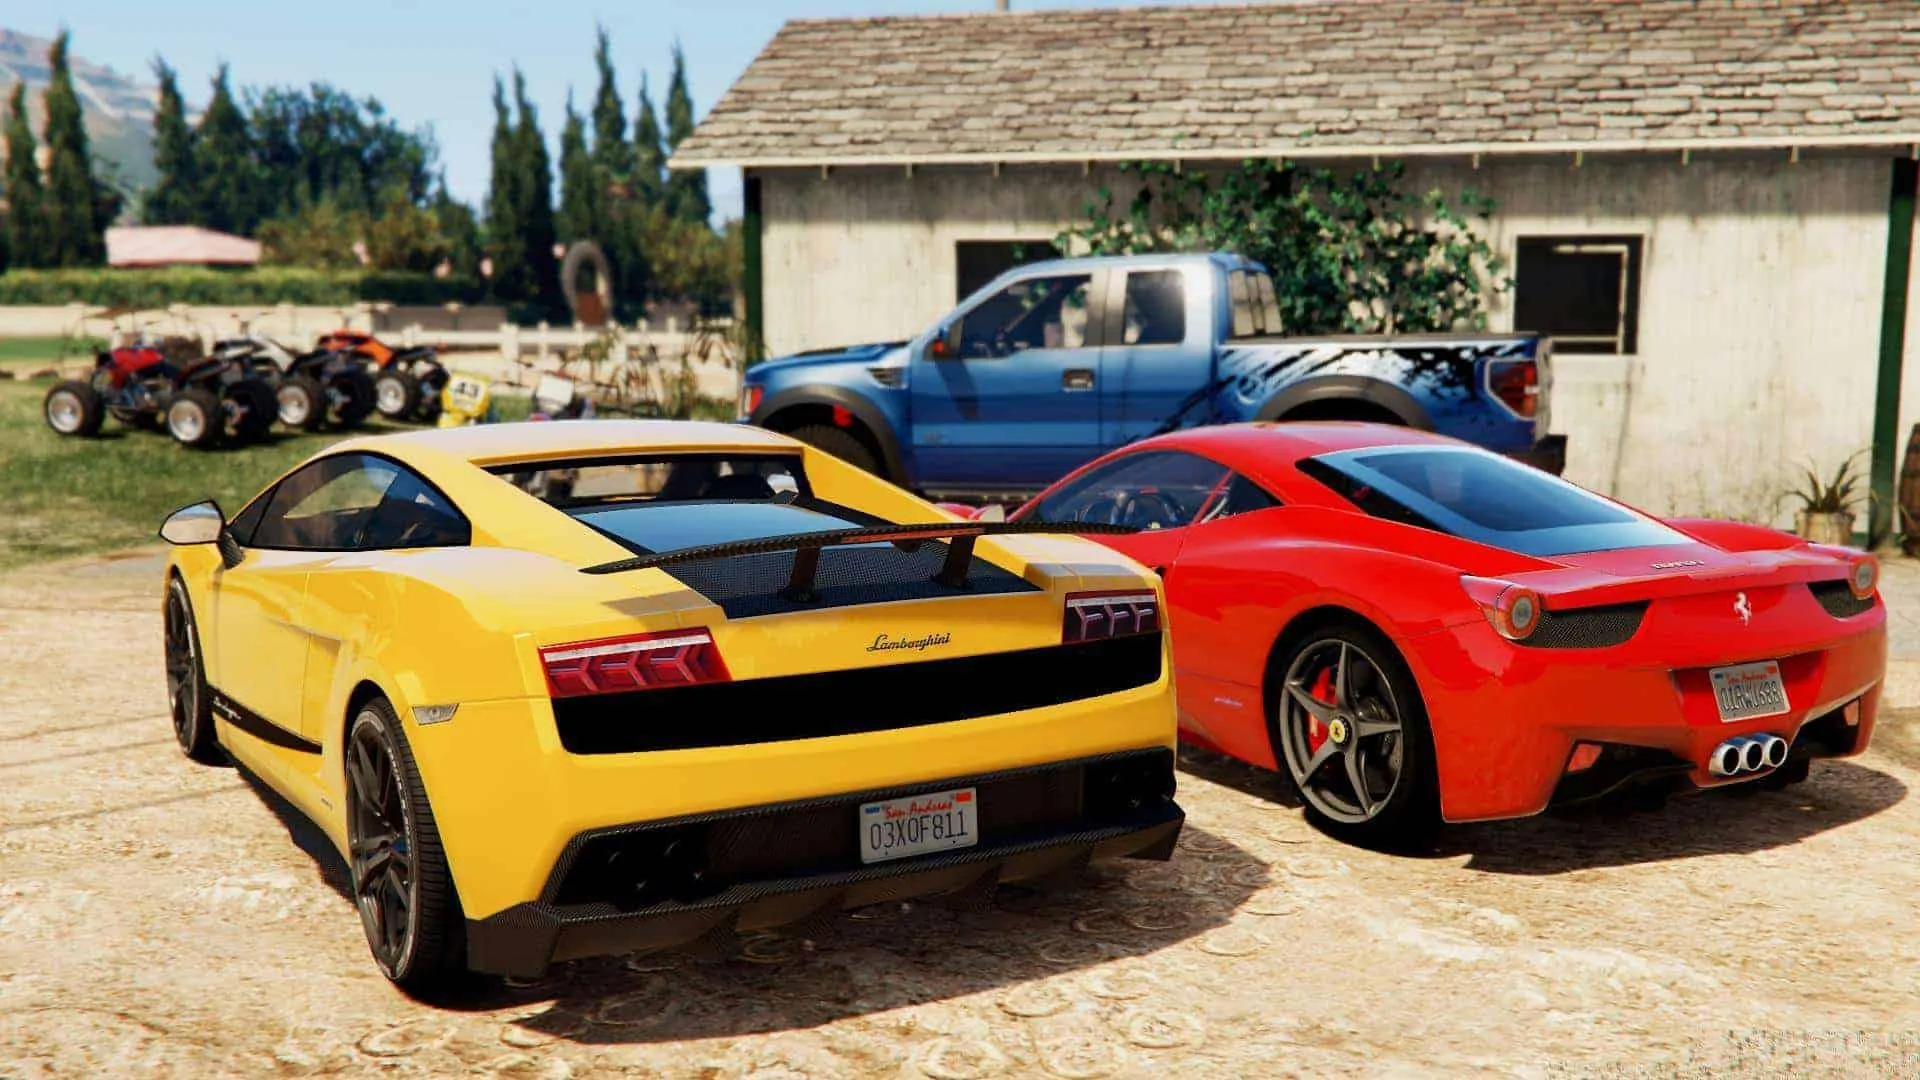 Best Car For The Money 2020 Best car for sumo gta online | Best Cars for the Money Awards 2019